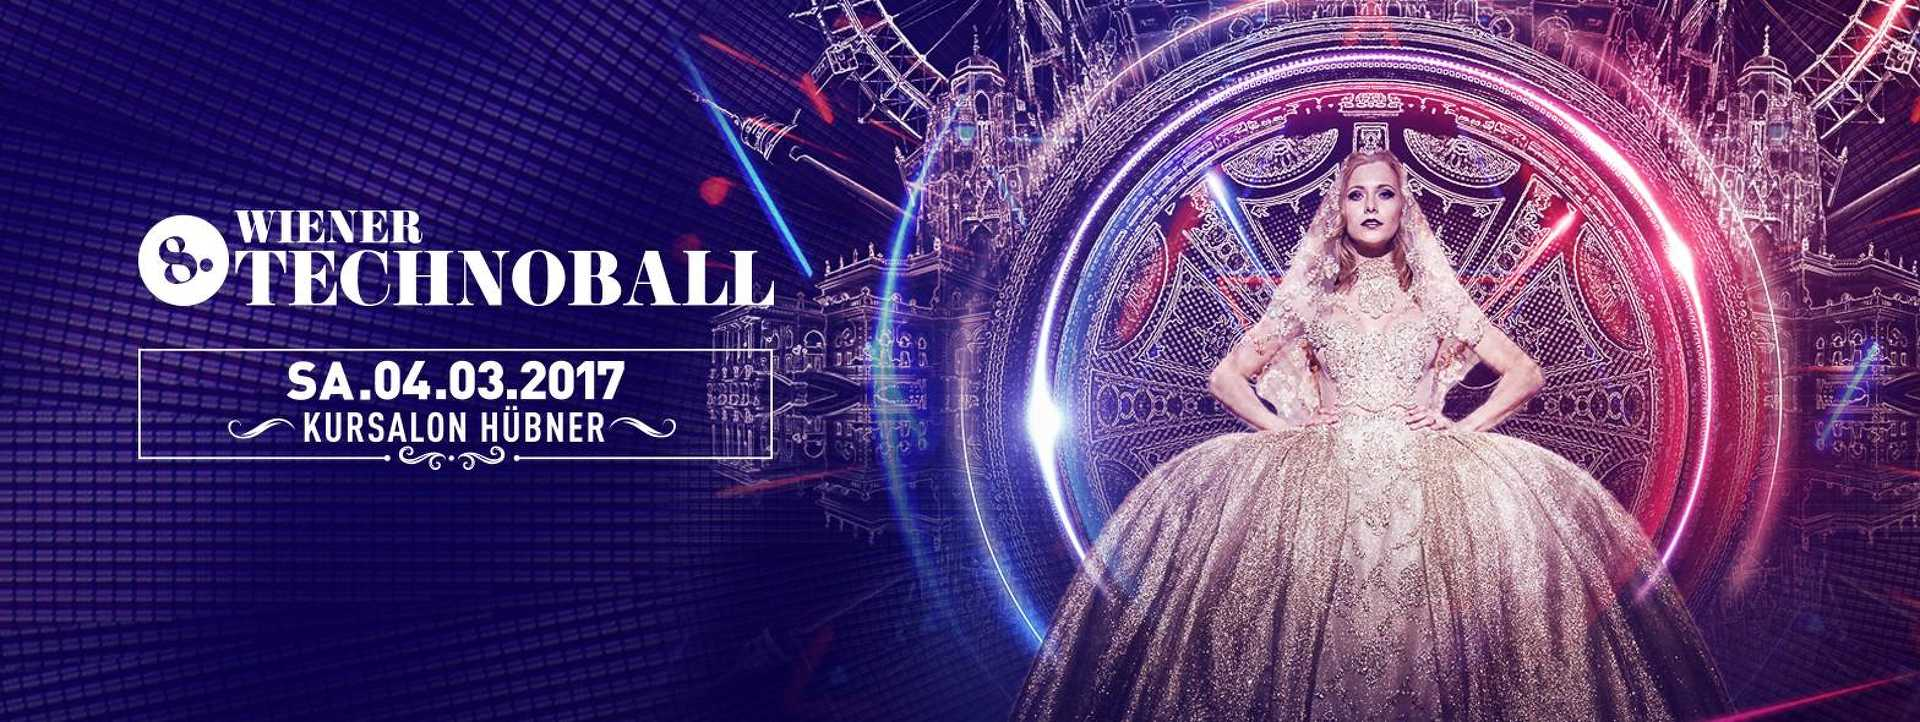 8. Wiener Technoball